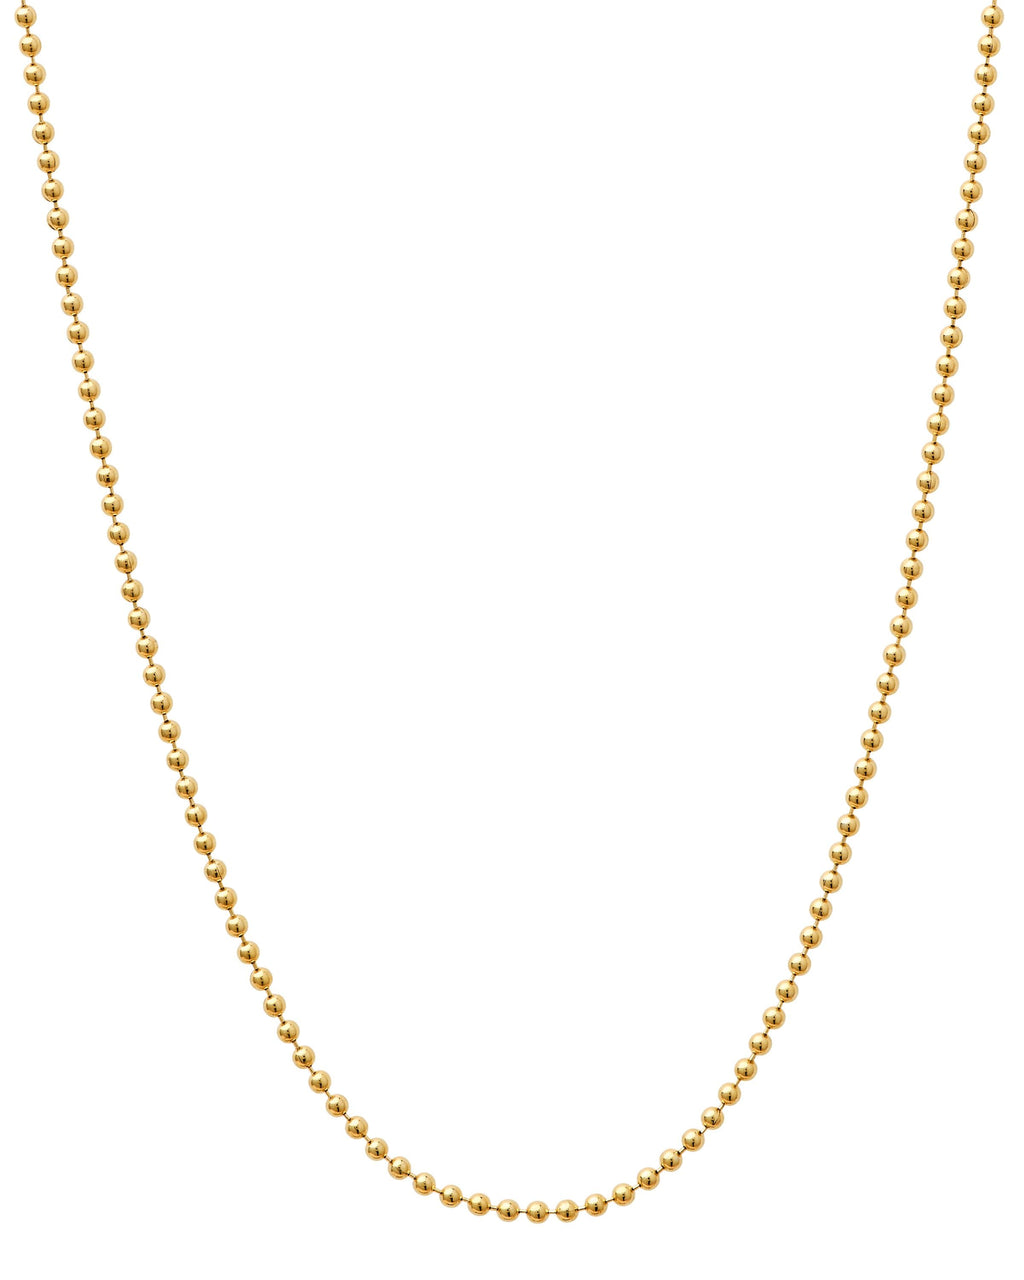 Gold Filled Bead Chain